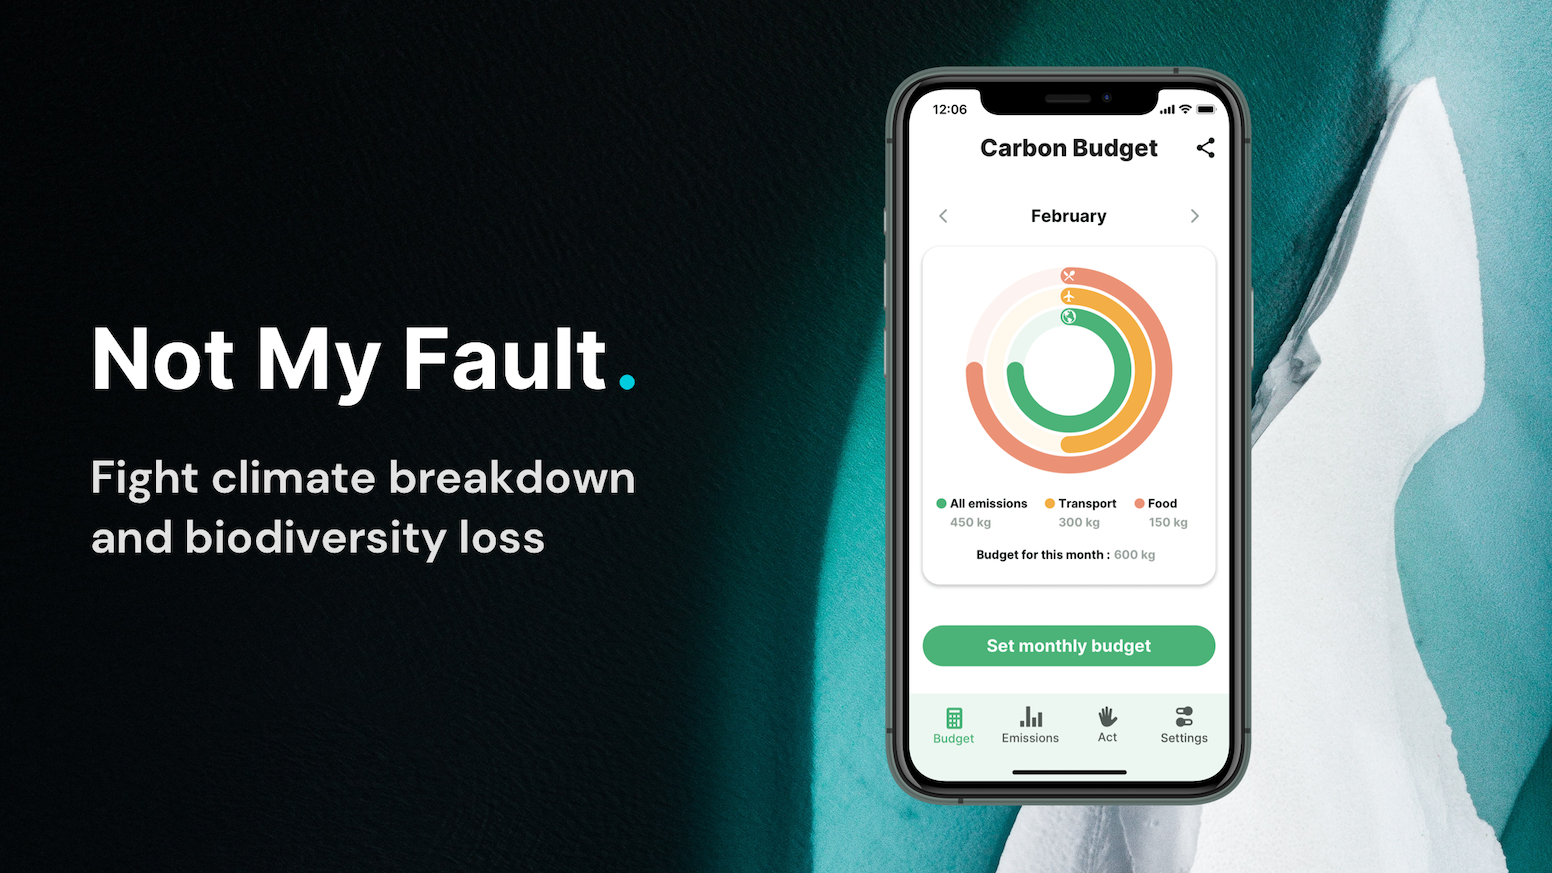 Calculate and compensate your CO2 emissions. Reduce your waste, transition to a sustainable life